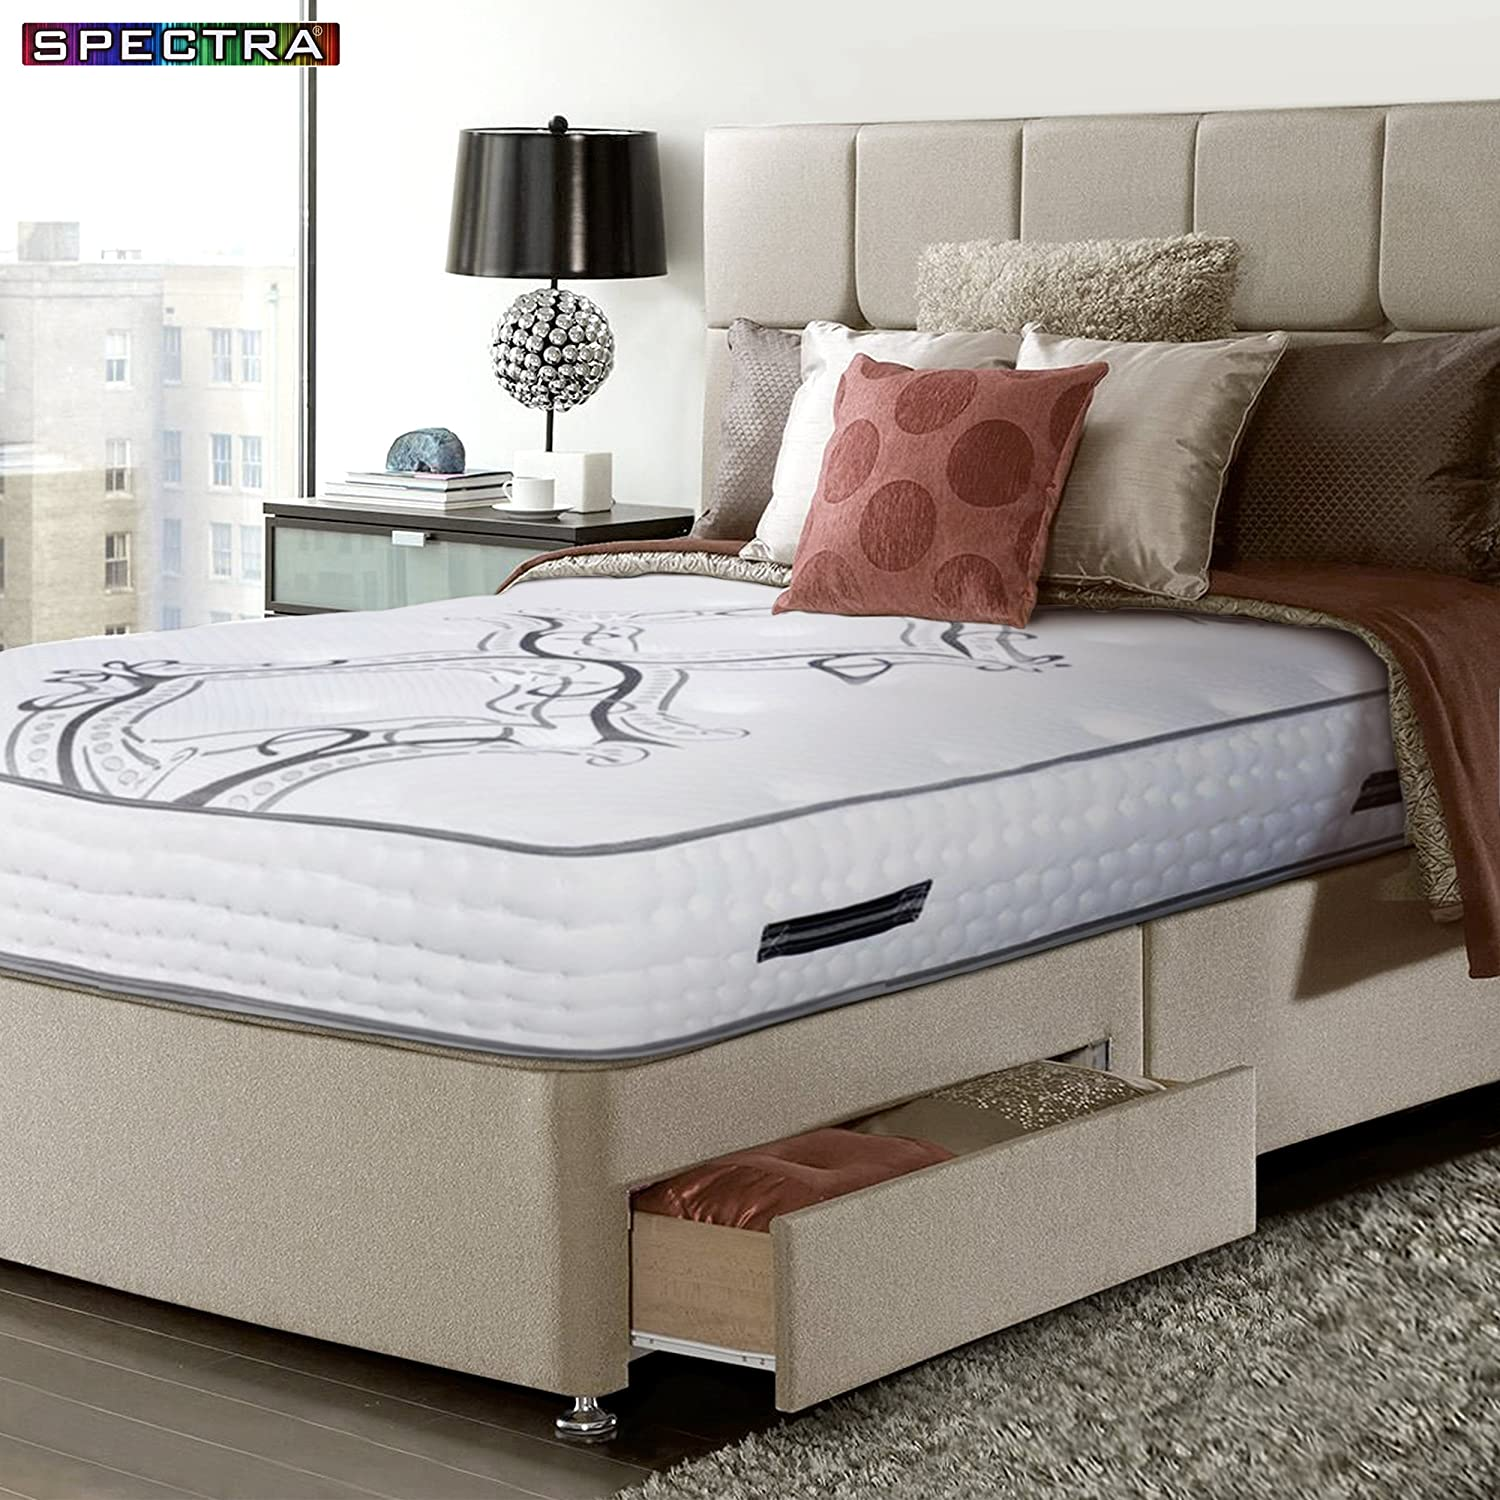 """Spectra Orthopedic Double-Sided 13.5"""" Firm Independent Pocket Coils Mattress"""